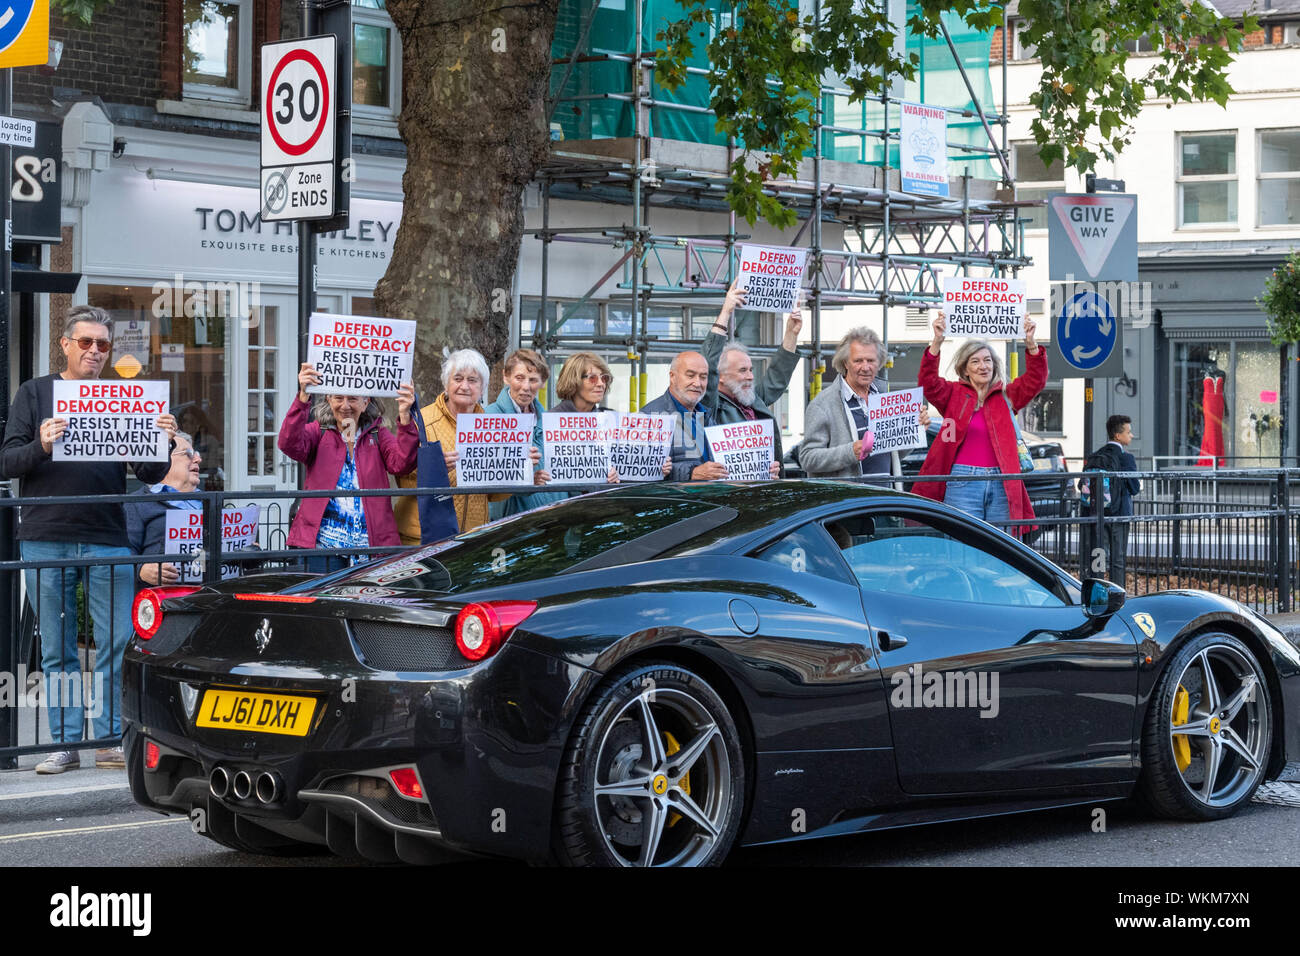 """Brentwood, Essex, UK. 4th September 2019 Mini """"Defend democracy"""" protest in the High Street of Brentwood, Essex, UK with .2012 Ferrari 458 Italia Dct  Credit: Ian Davidson/Alamy Live News Stock Photo"""